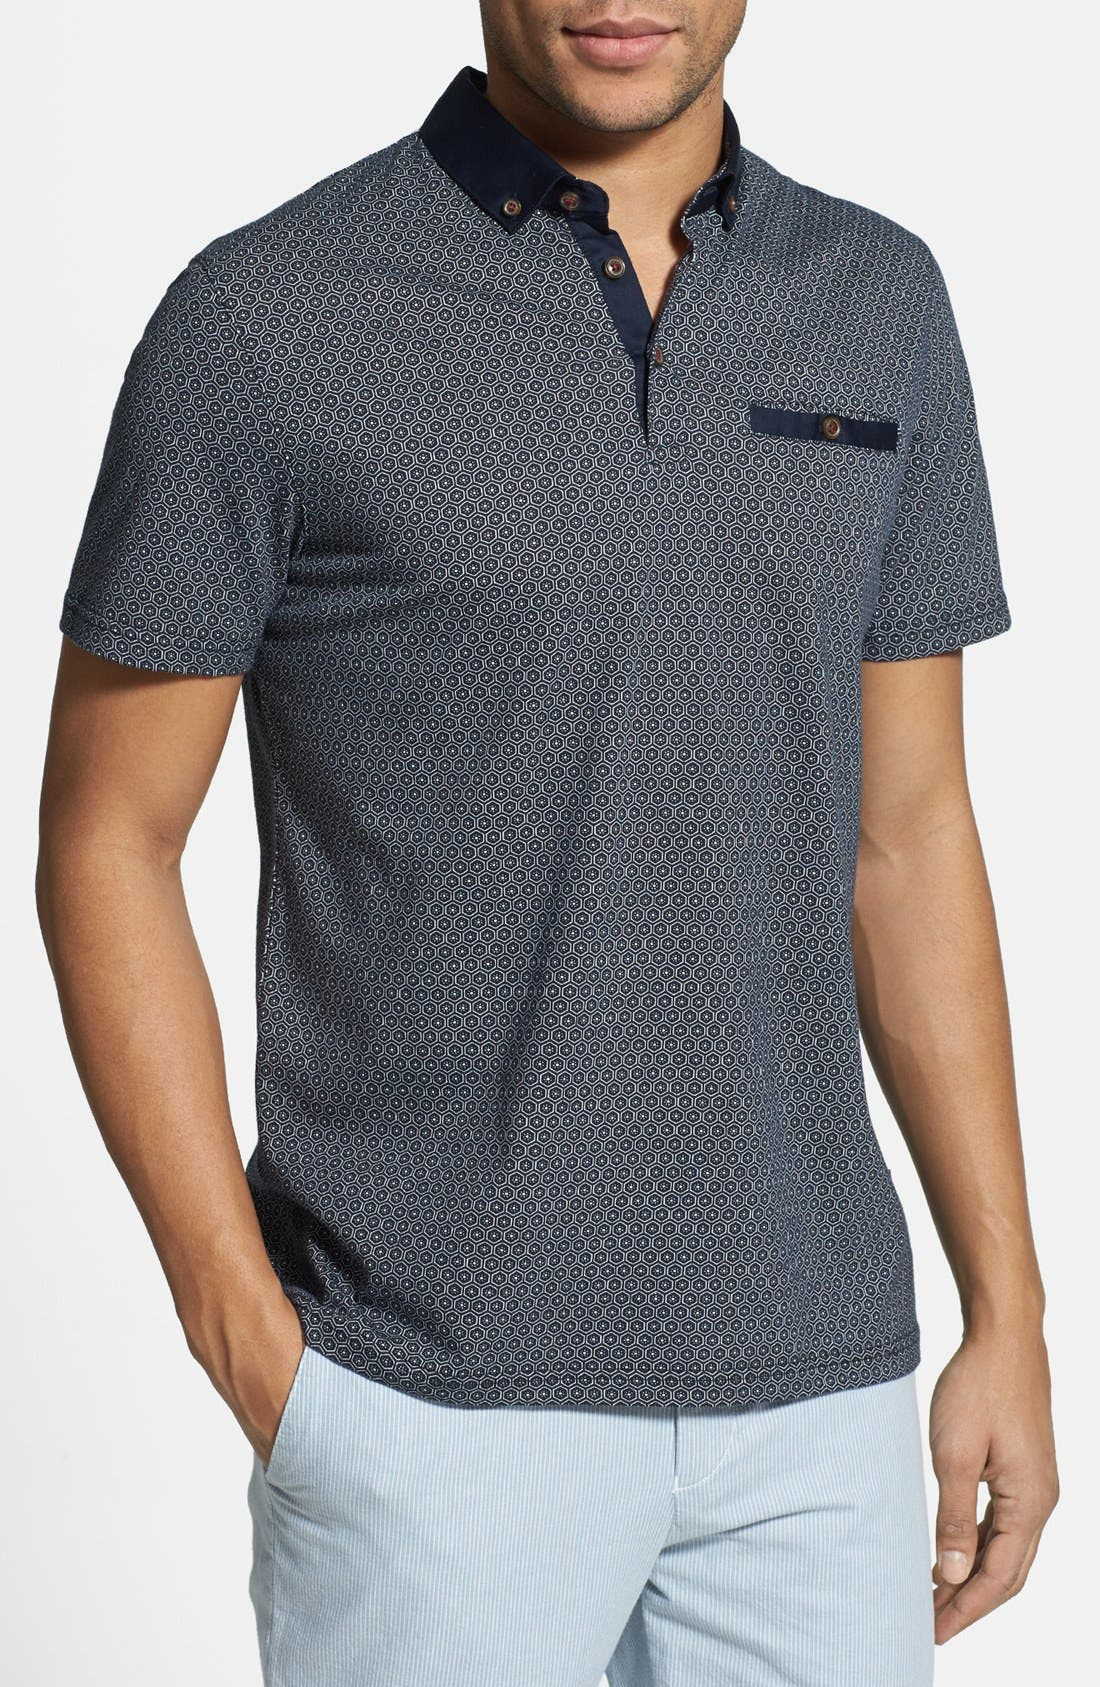 Alternate Image 1 Selected - Ted Baker London 'Elwhite' Graphic Print Polo